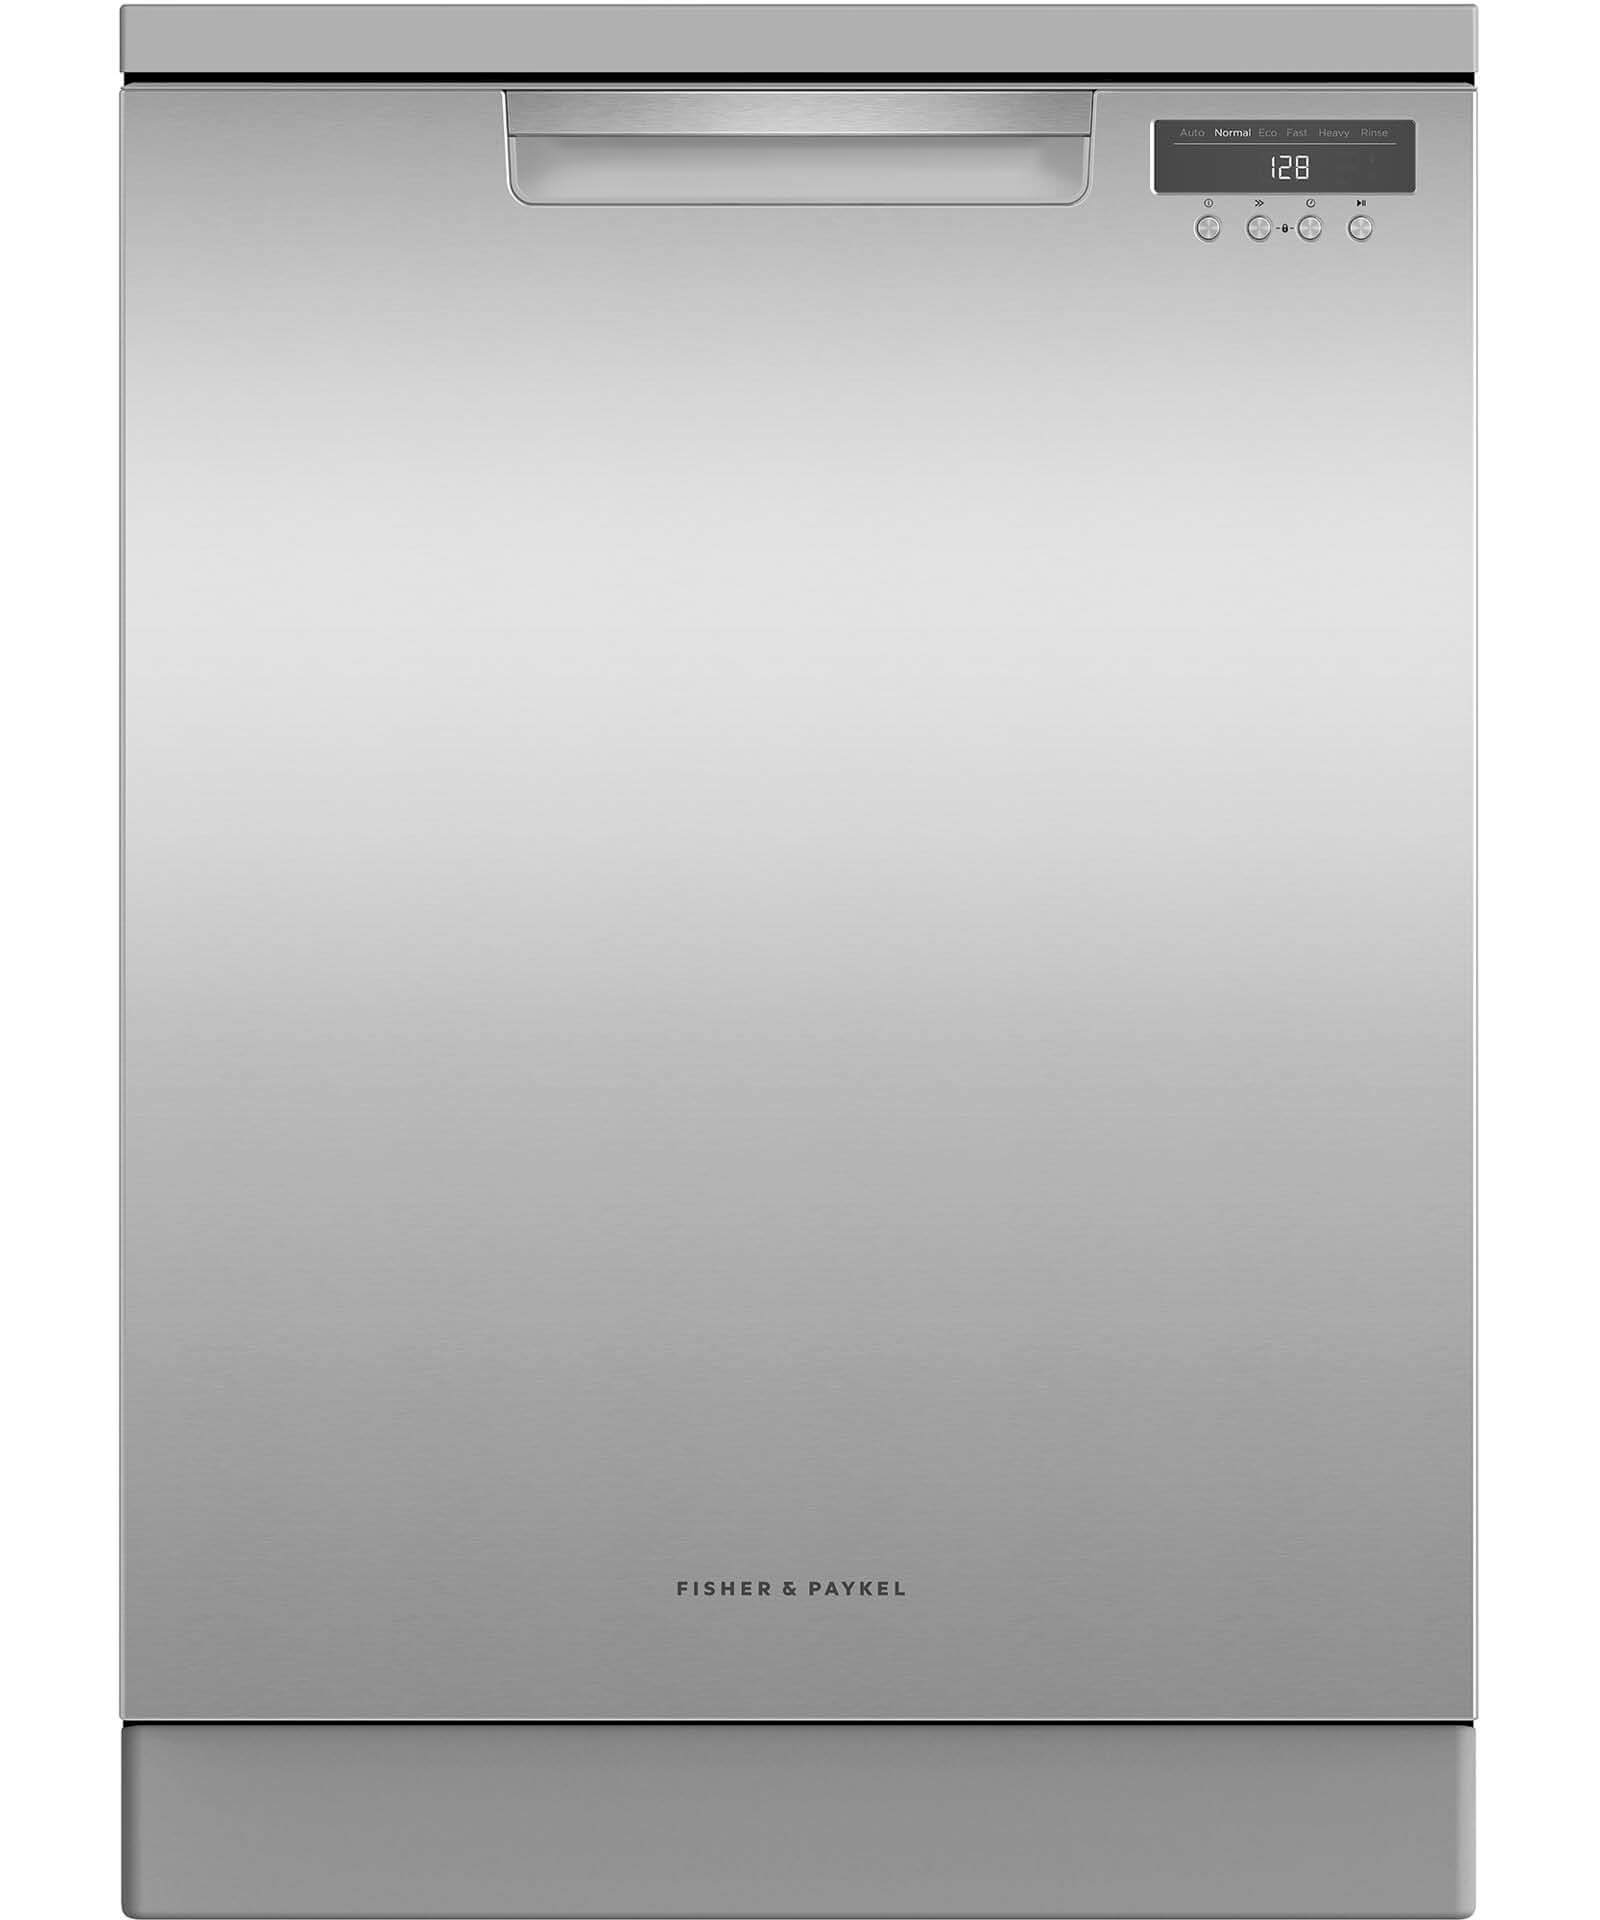 DW60FC2X1 - C2 Dishwasher, 15 place settings - 81634